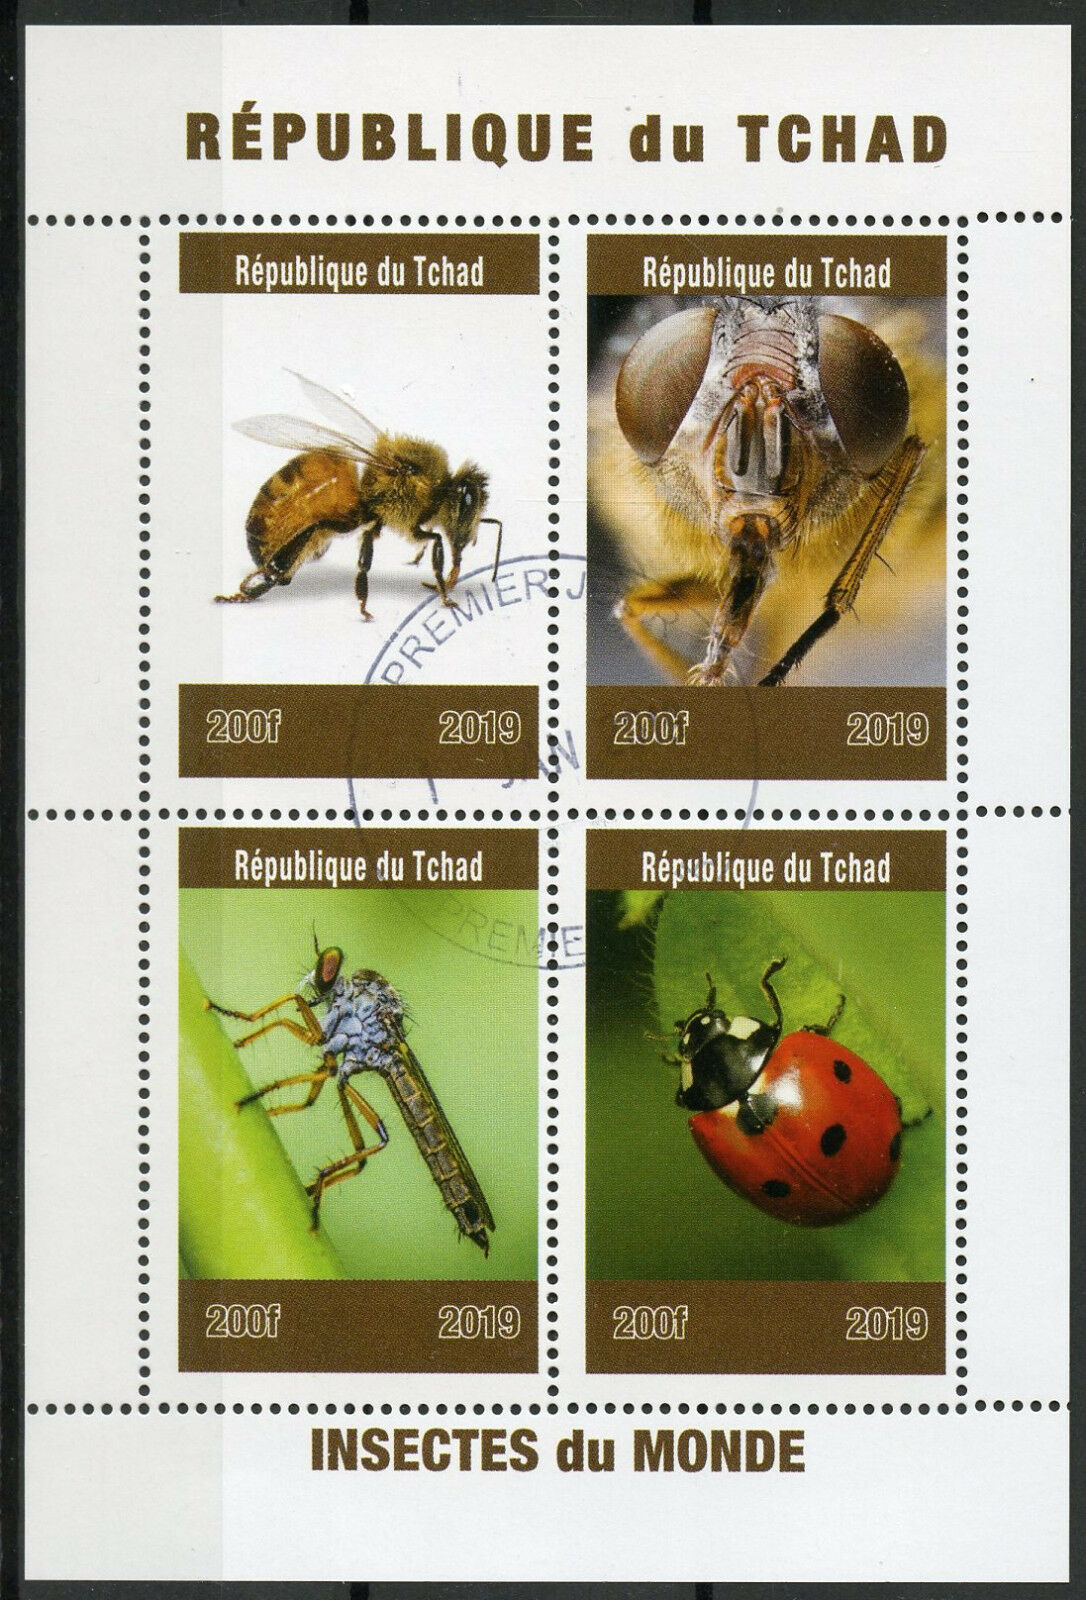 Republic of Chad - Insects of the World (January 1, 2019) sheet of 4